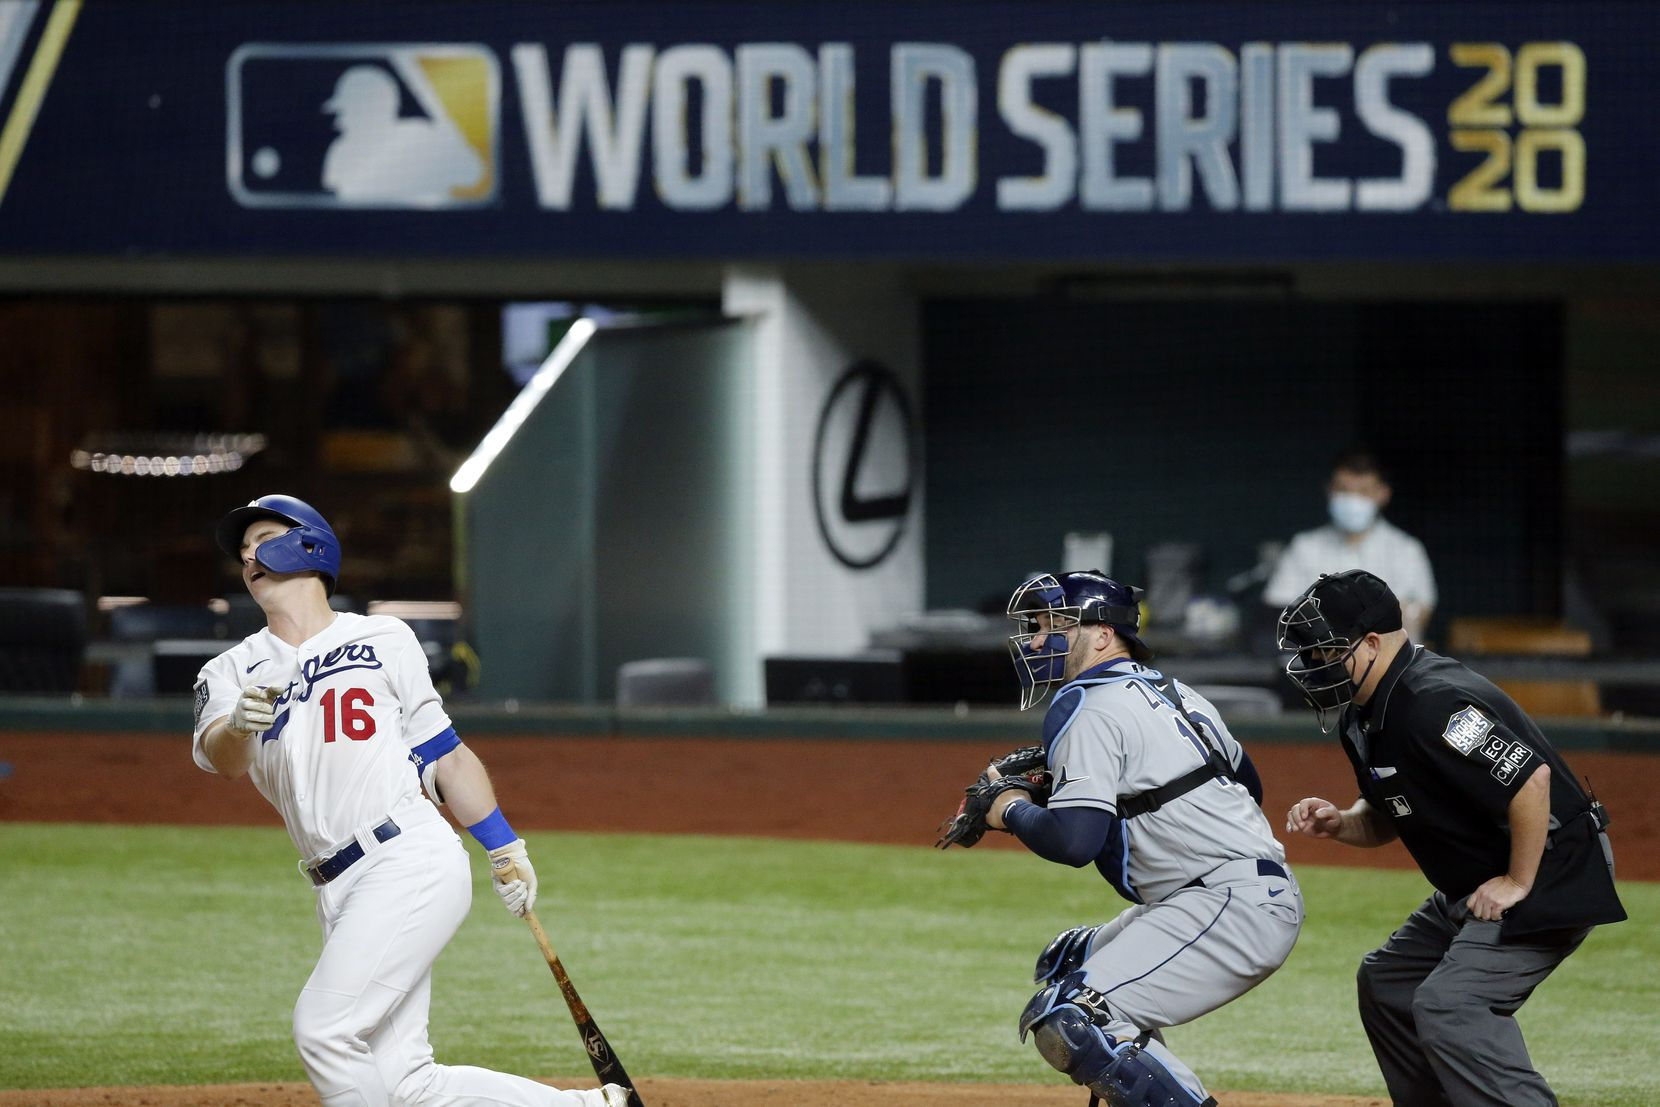 Los Angeles Dodgers designated hitter Will Smith (16) strikes out to end the fourth inning in Game 2 of the World Series at Globe Life Field in Arlington, Wednesday, October 21, 2020. Tampa Bay Rays starting pitcher Blake Snell (4) struck him out. (Tom Fox/The Dallas Morning News)